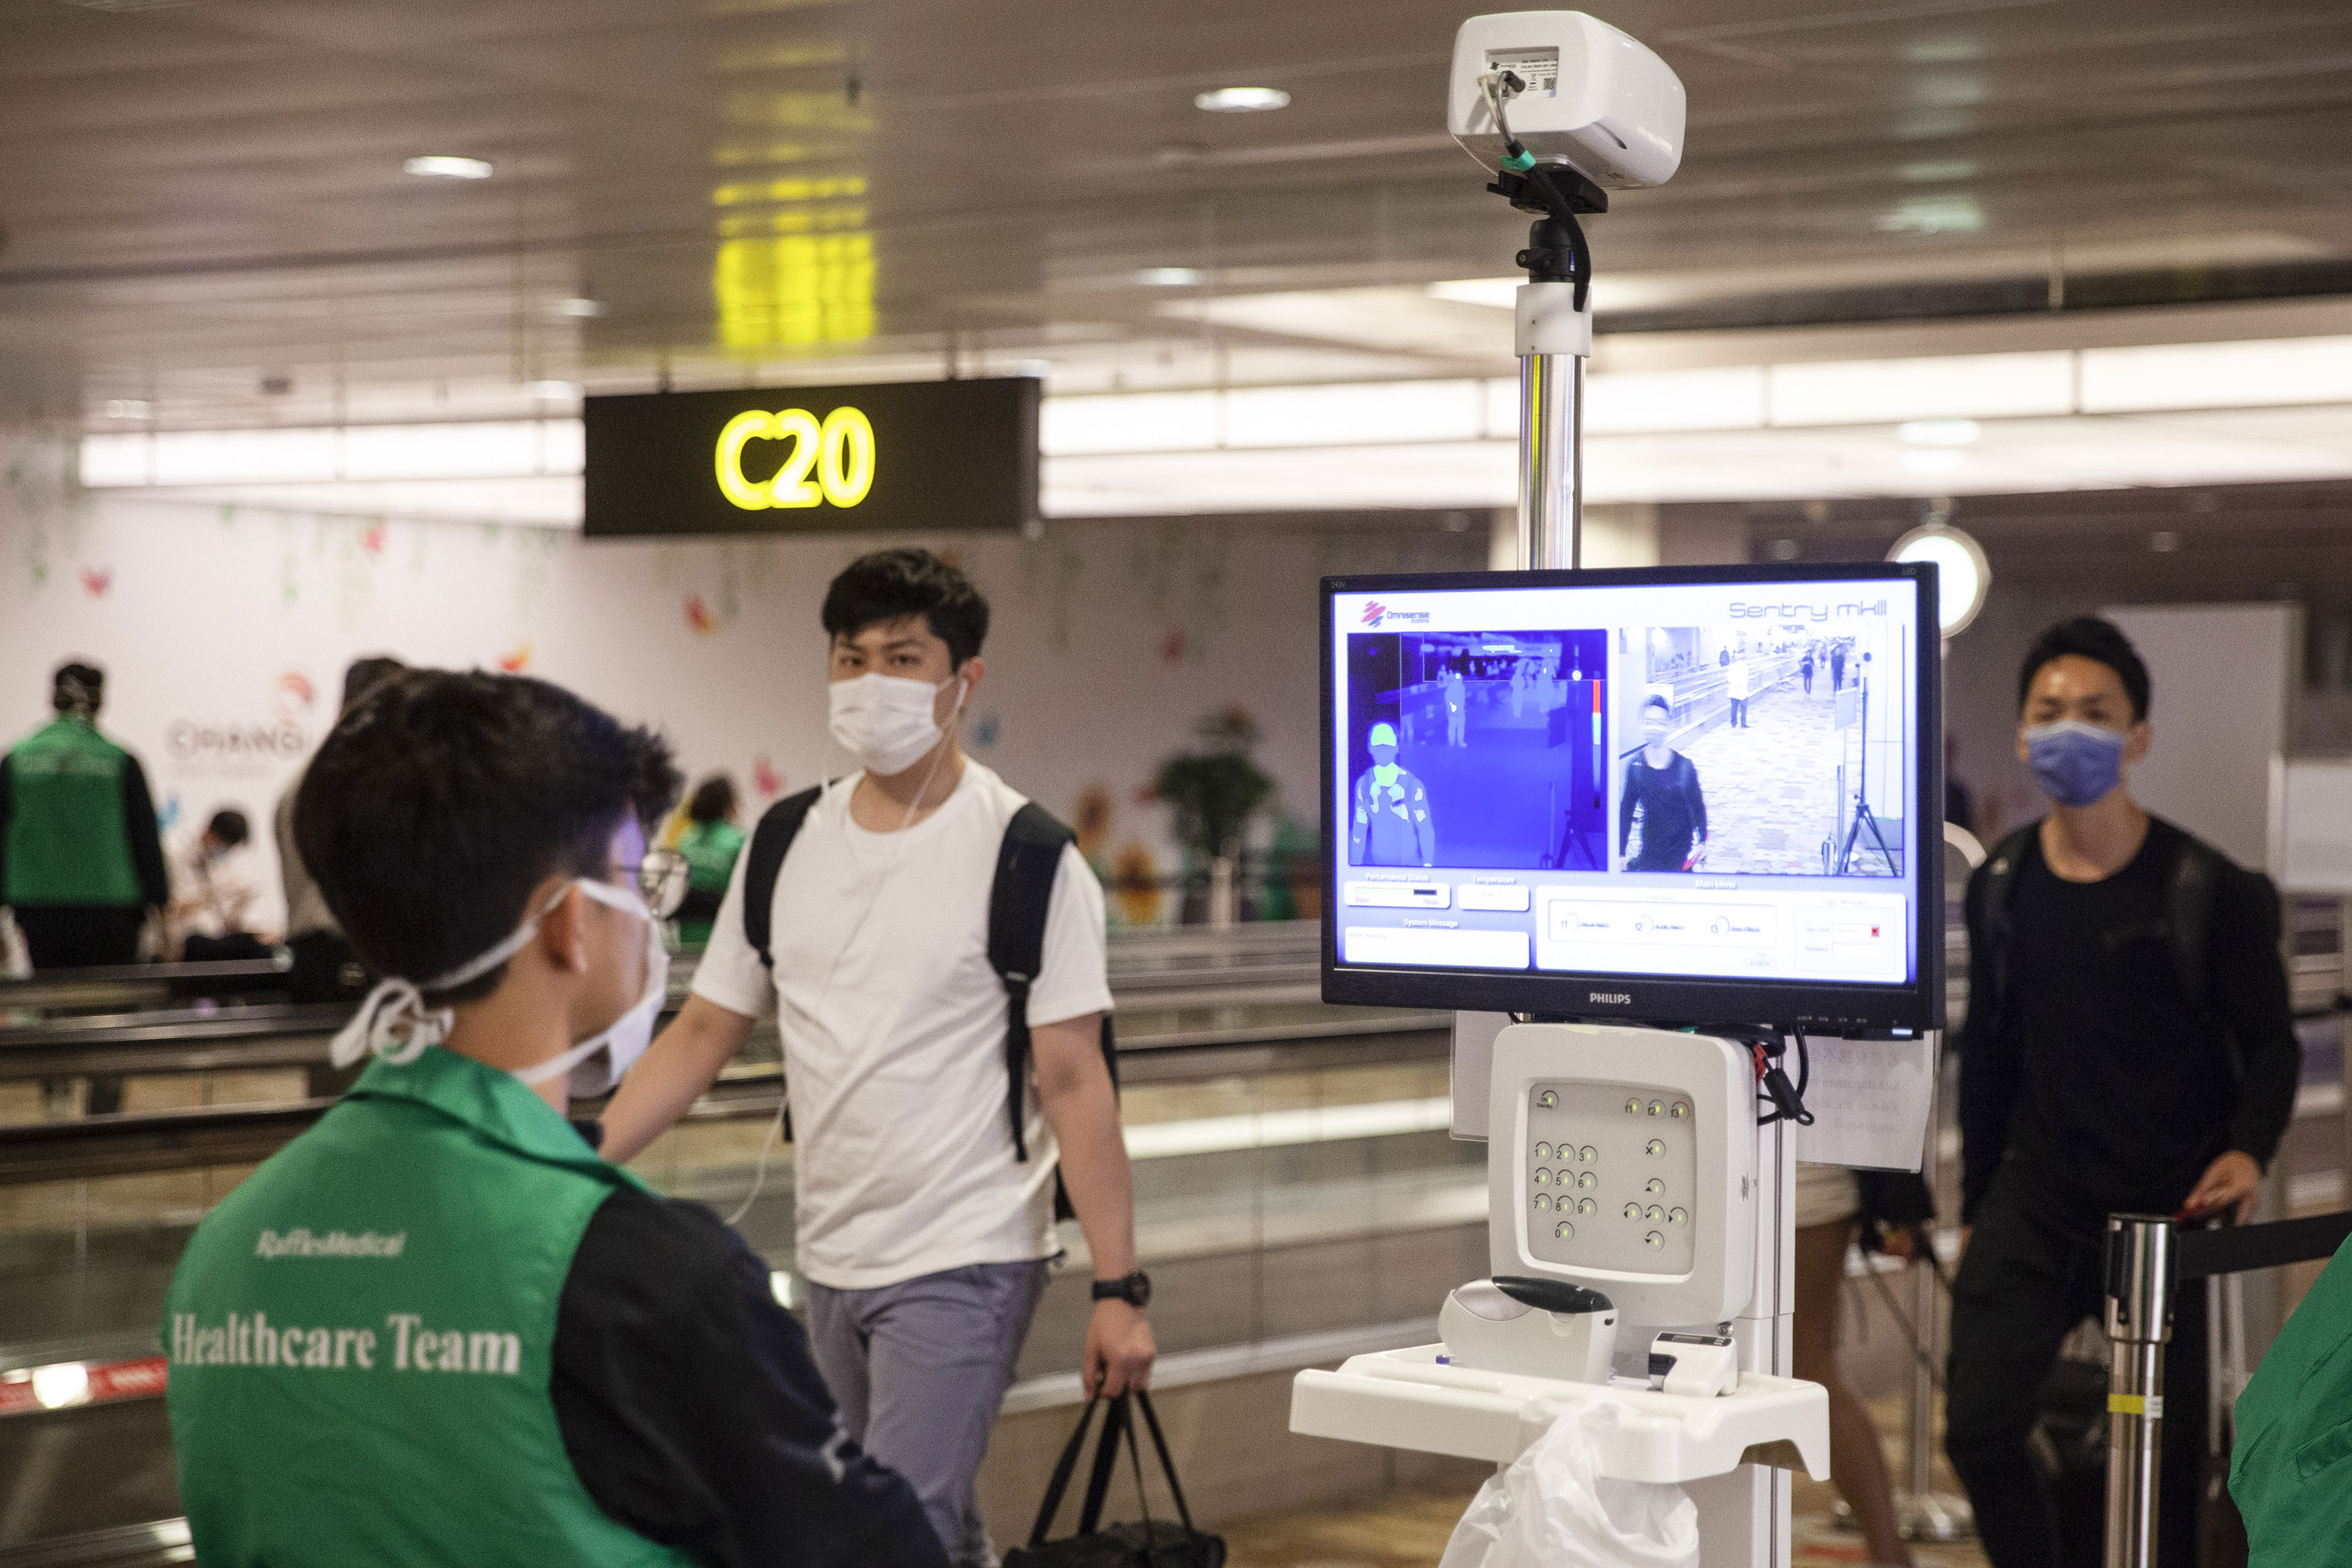 Passengers' temperatures are checked as travelers pass through Changi Airport in Singapore on March 11.